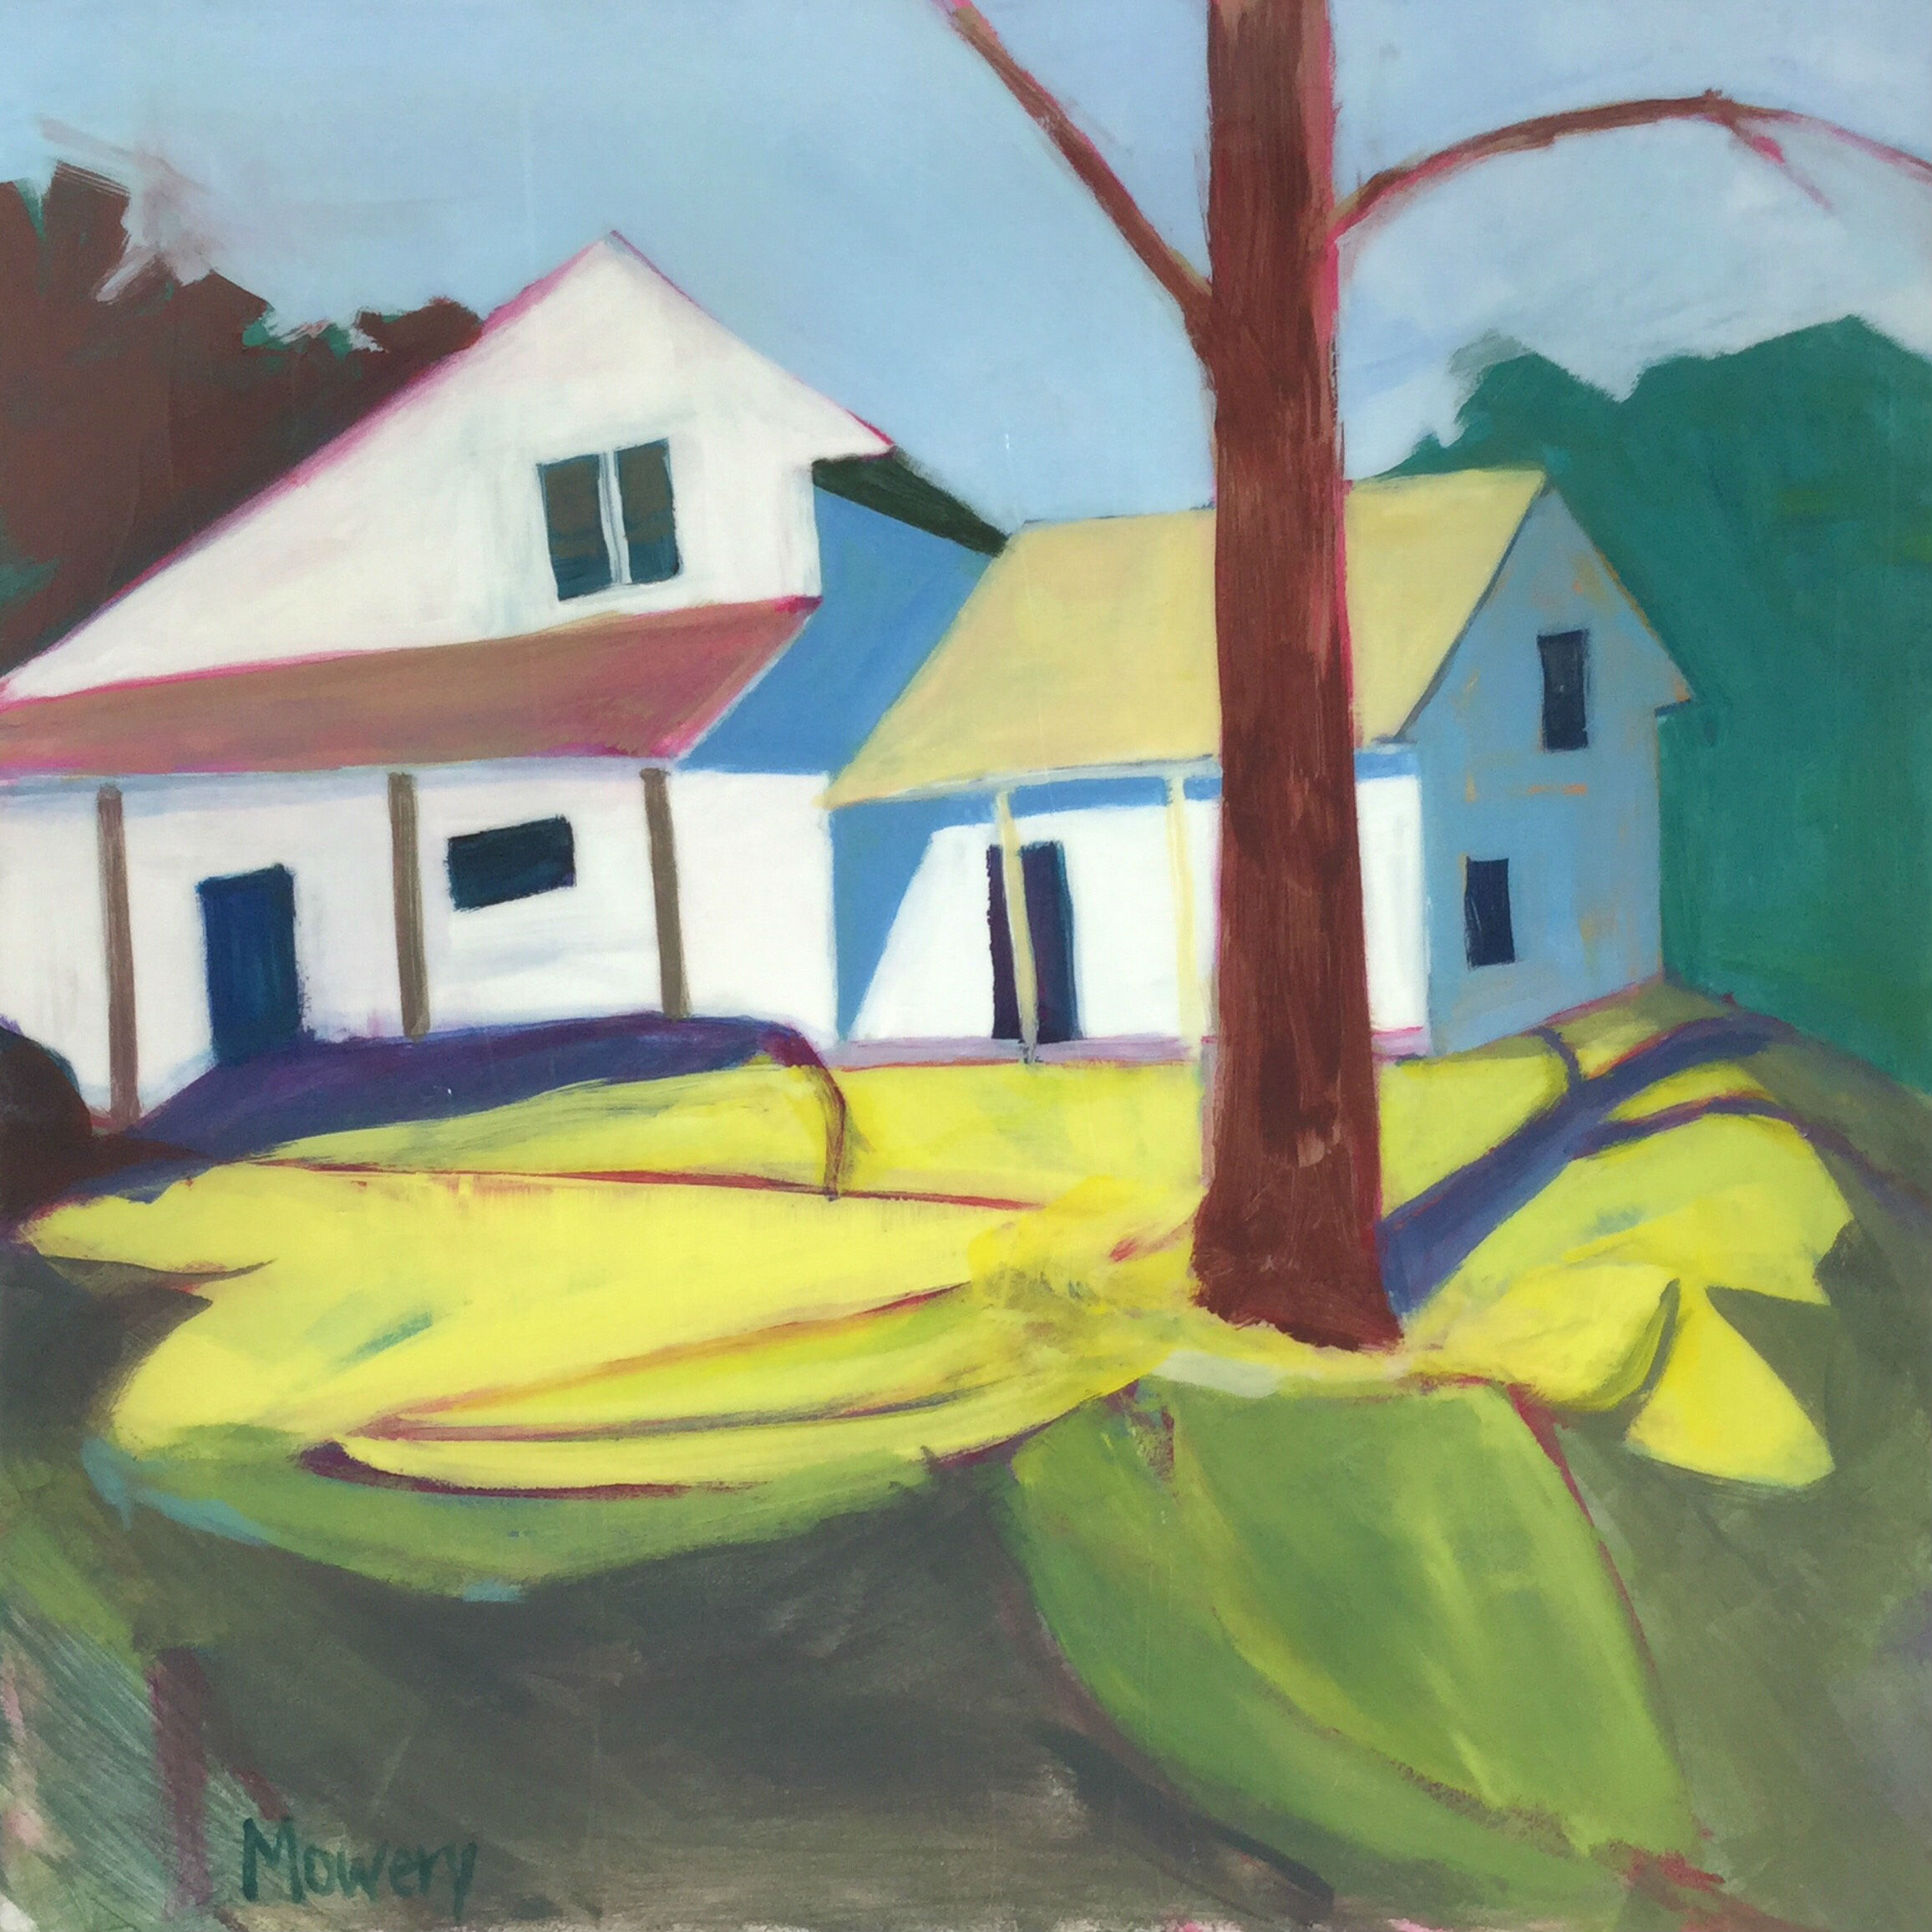 This is an acrylic painting of a suburban house with complicated roof lines by artist Barb Mowery.